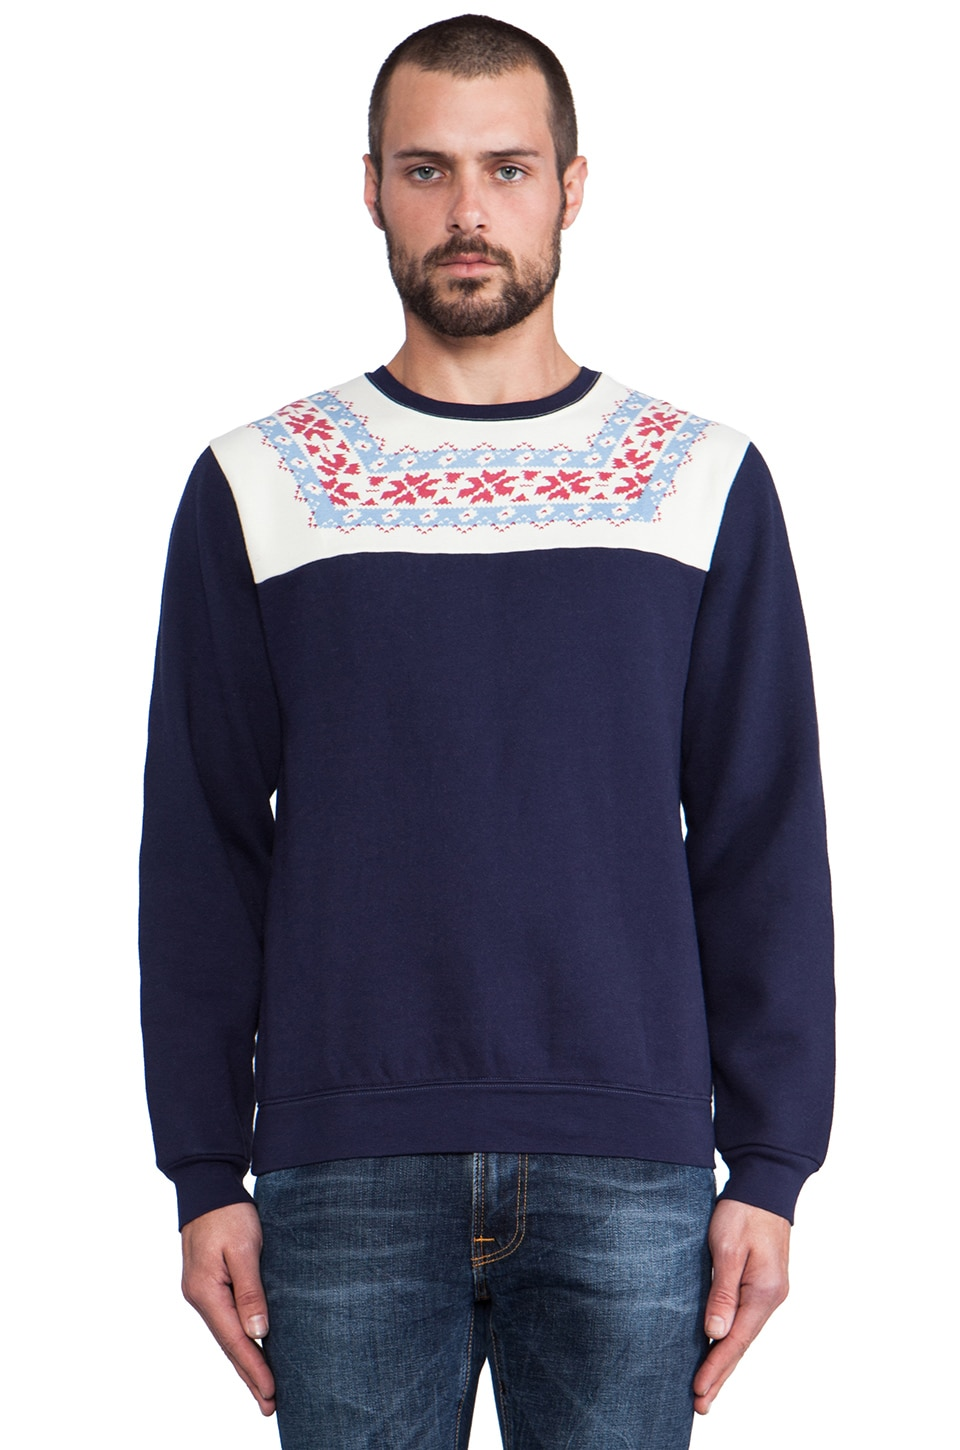 GANT Rugger Bloggers Delight 2.0 Sweater in Navy